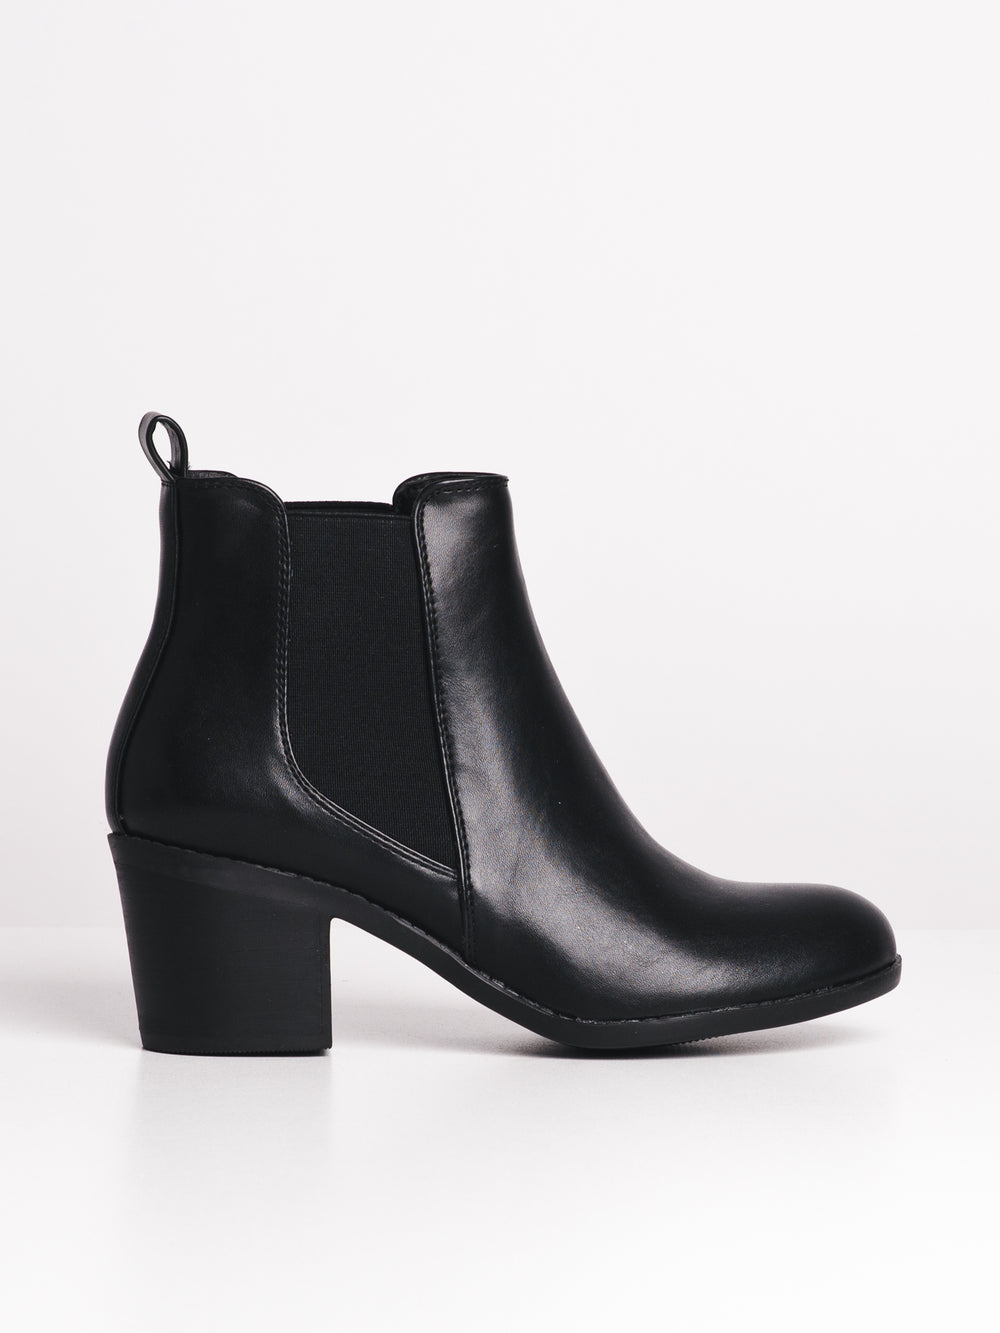 WOMENS CLAIRE - BLACK-D4